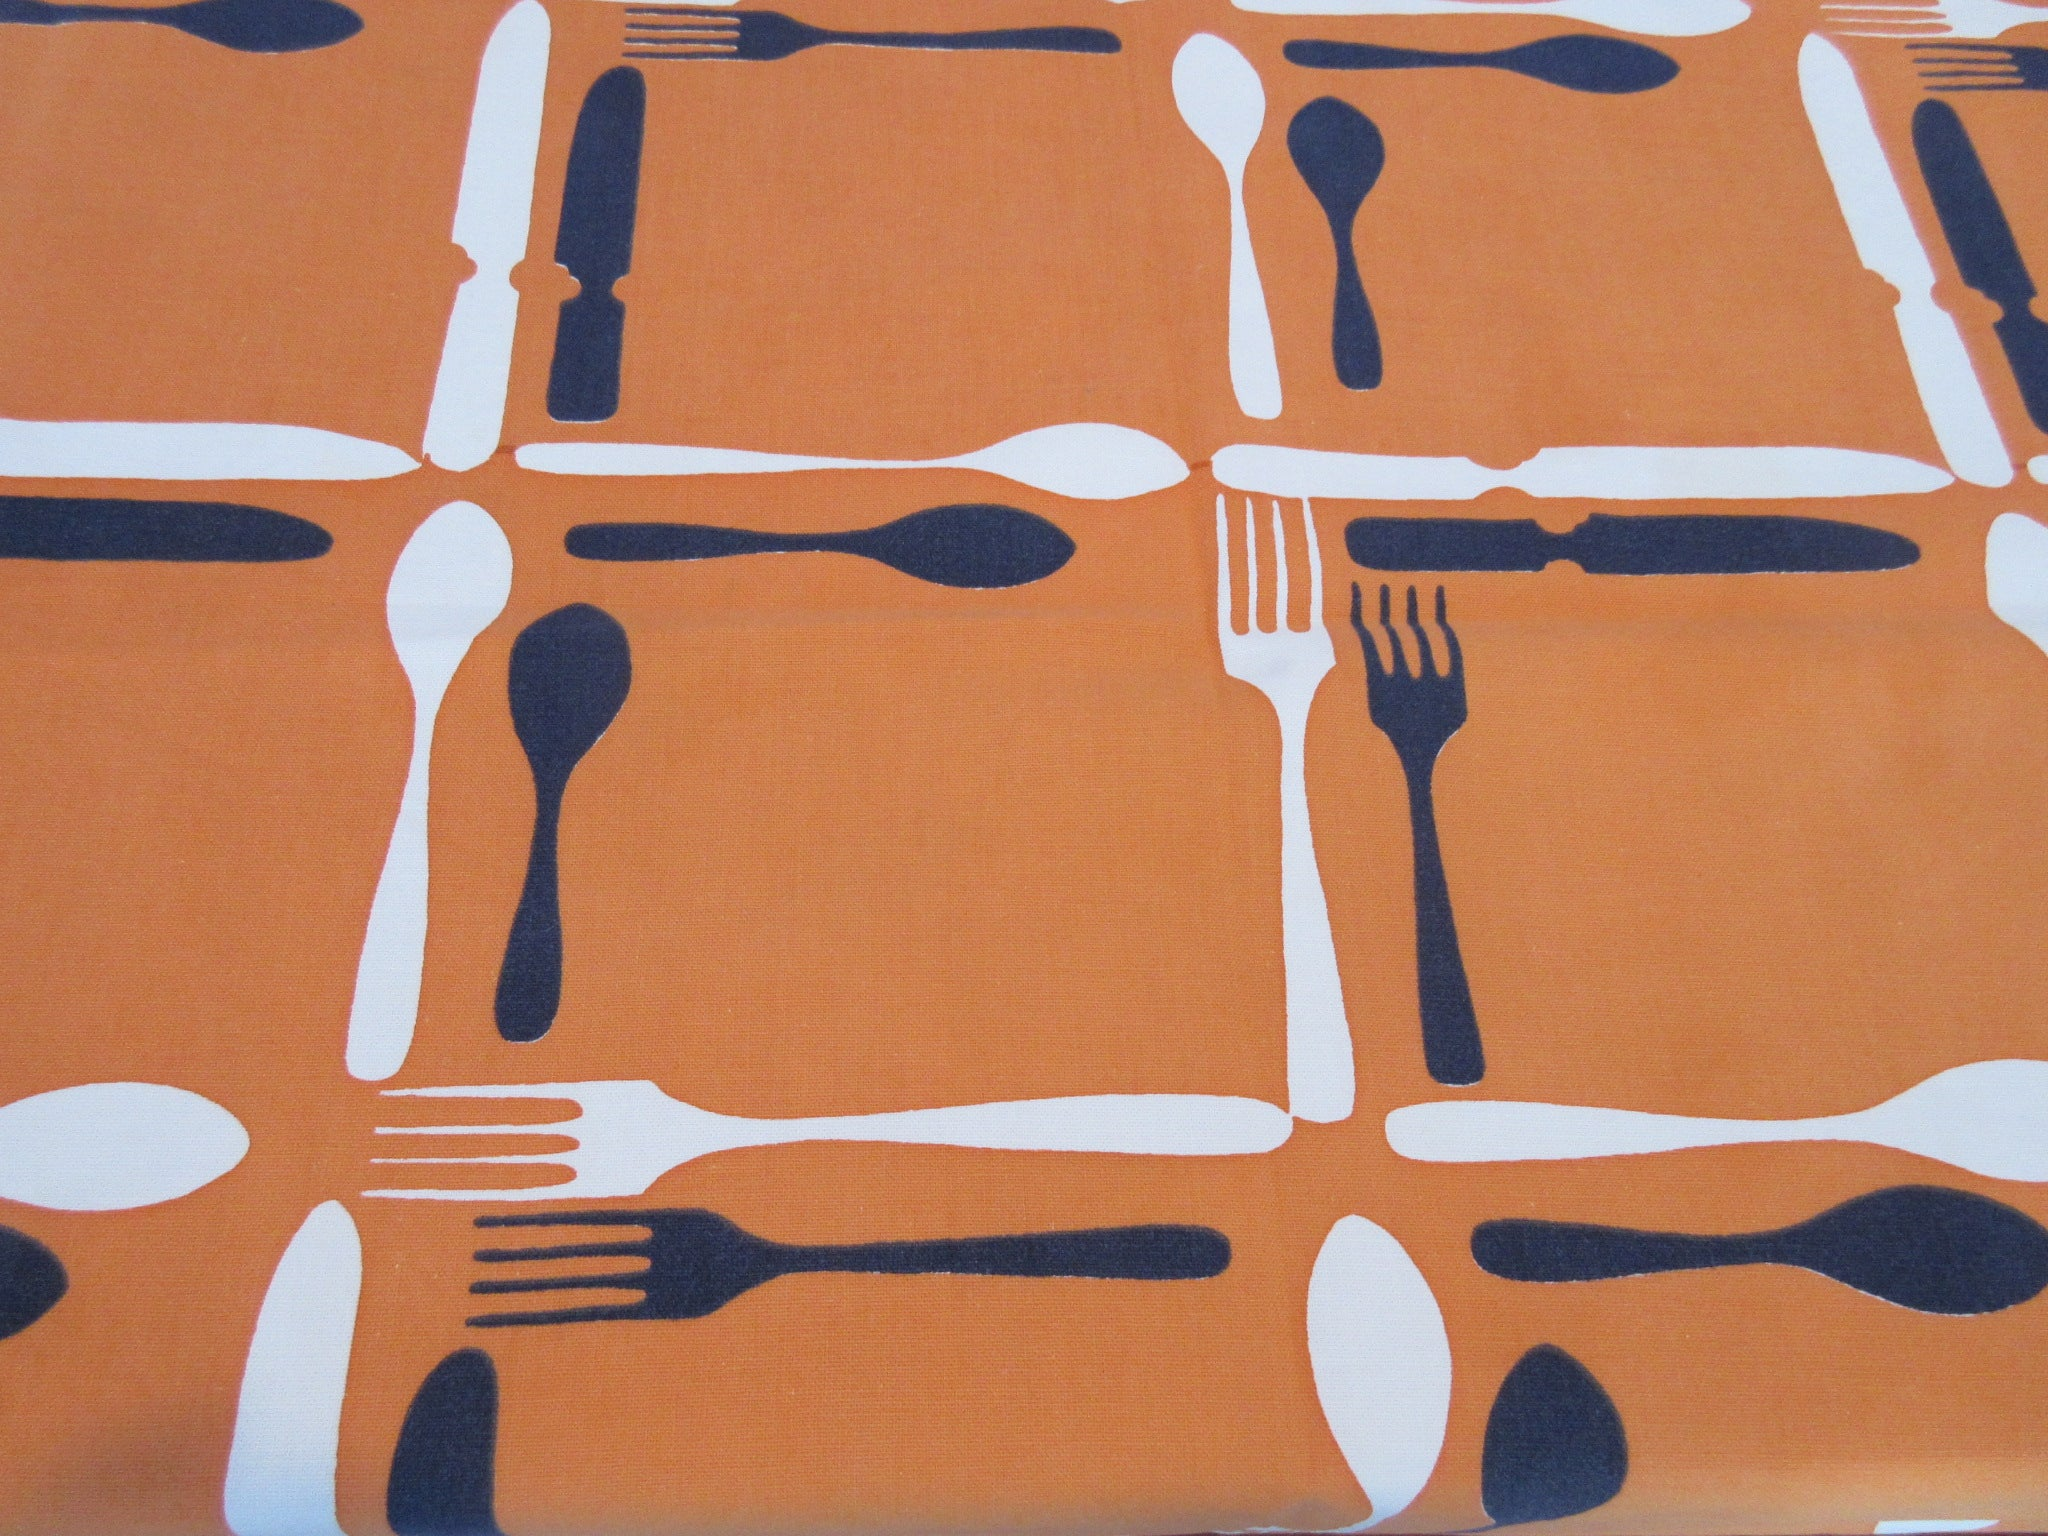 Forks Knives Silverware Flatware on Orange Novelty Vintage Printed Tablecloth (52 X 49)